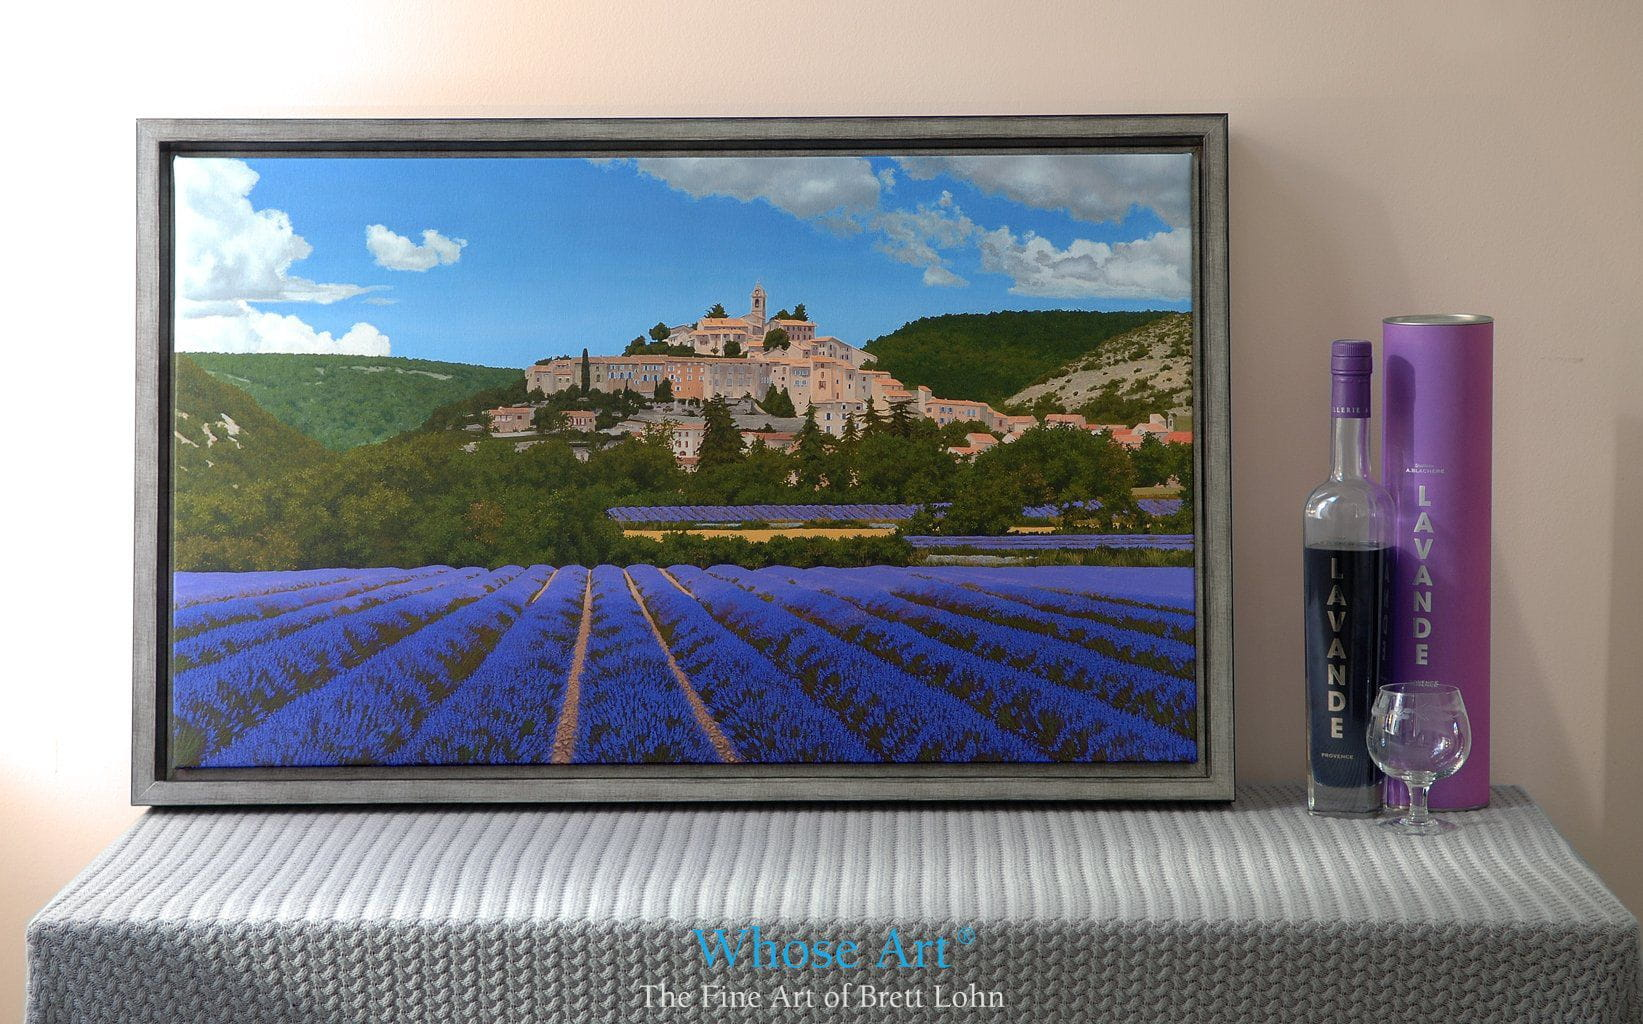 Canvas art print featuring a painting of a village nestling in a Lavender field in Provence, France. The print is framed.